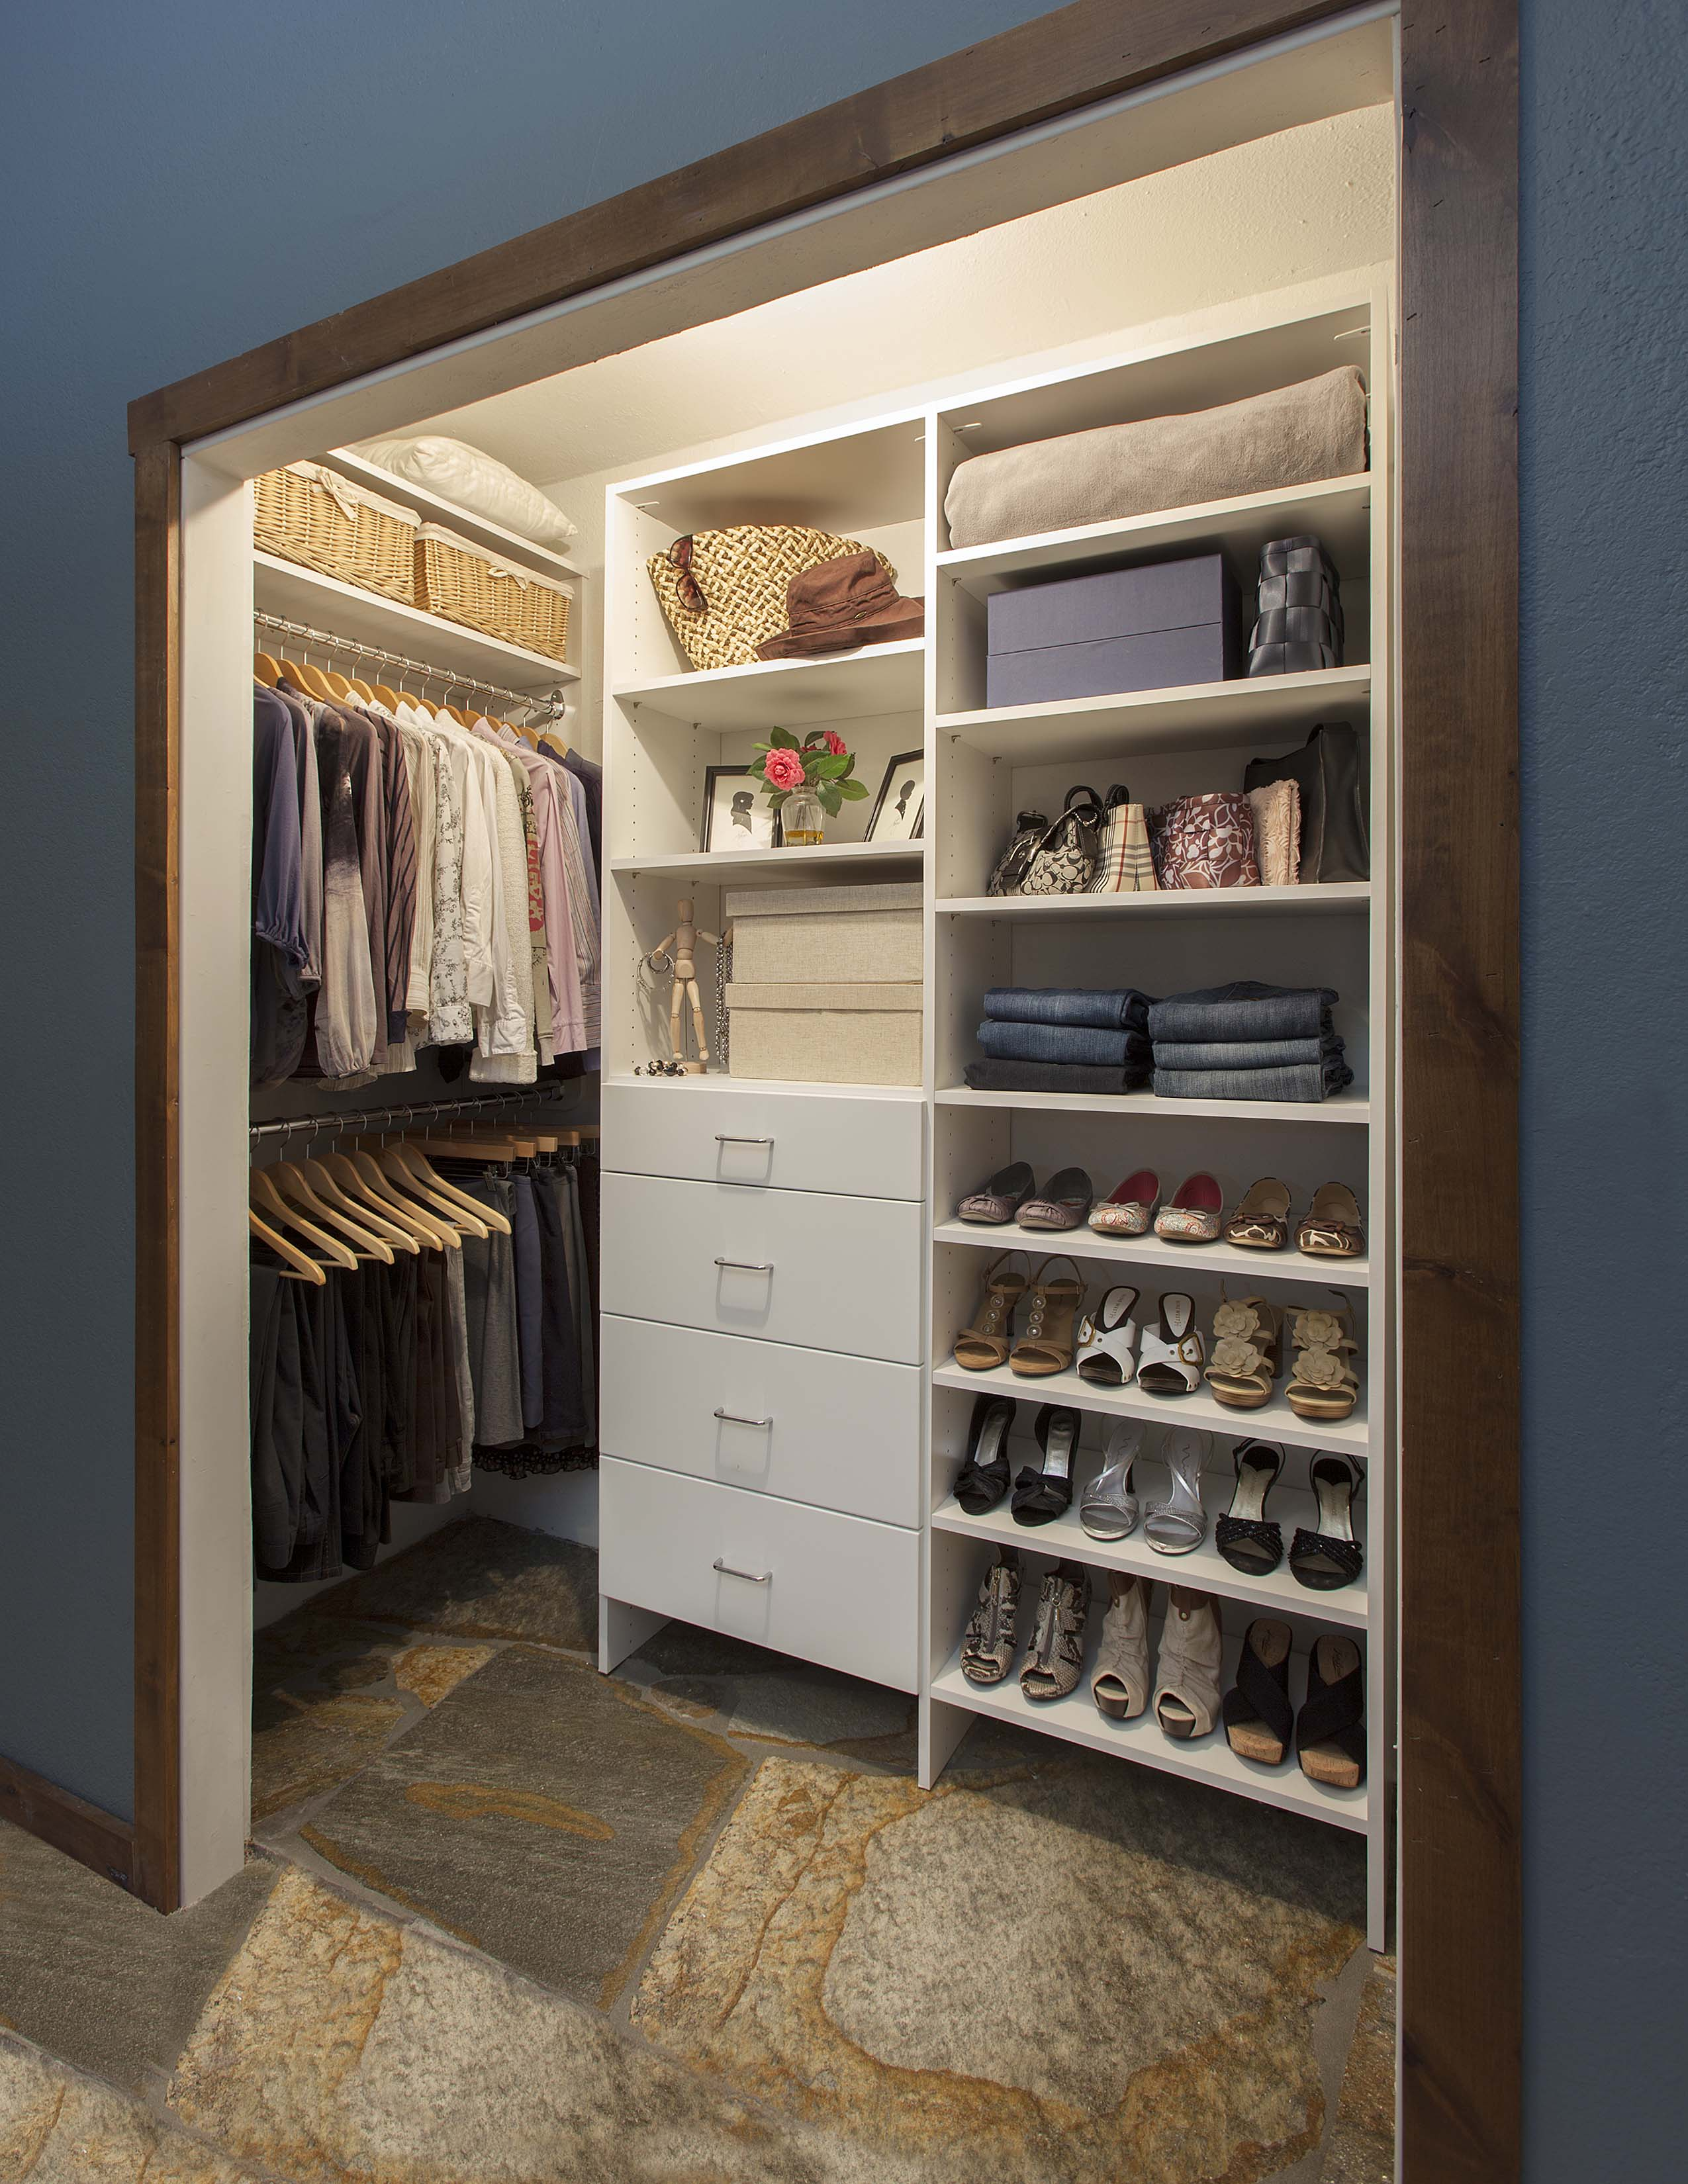 Reach-in Closet with Hanging Rods on Side Walls